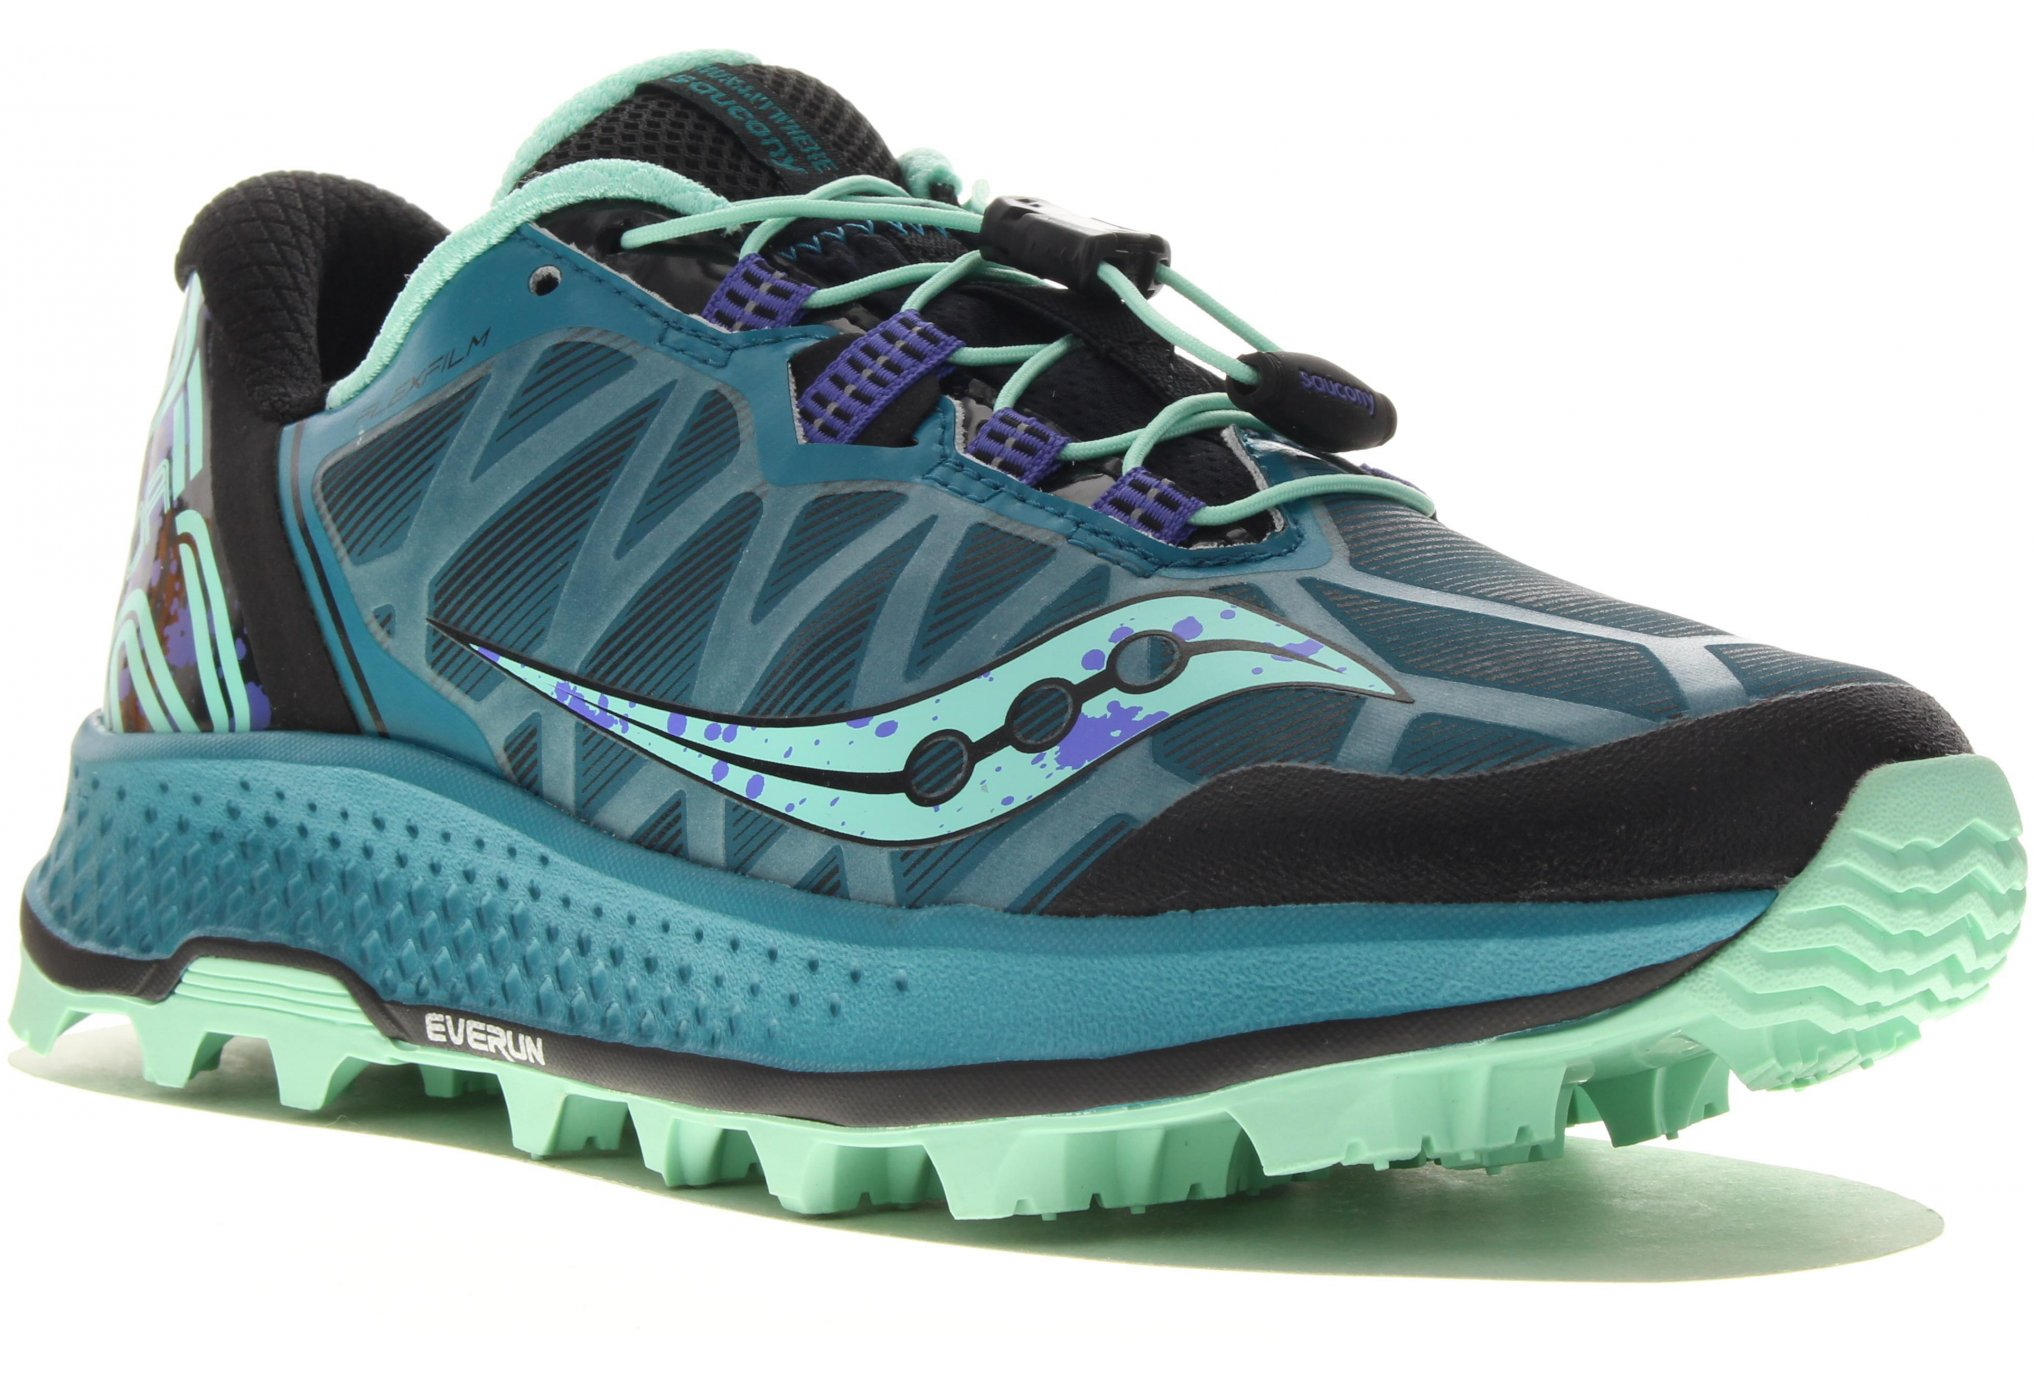 bf955fec95a Trail Session - Saucony Koa ST W Chaussures running femme